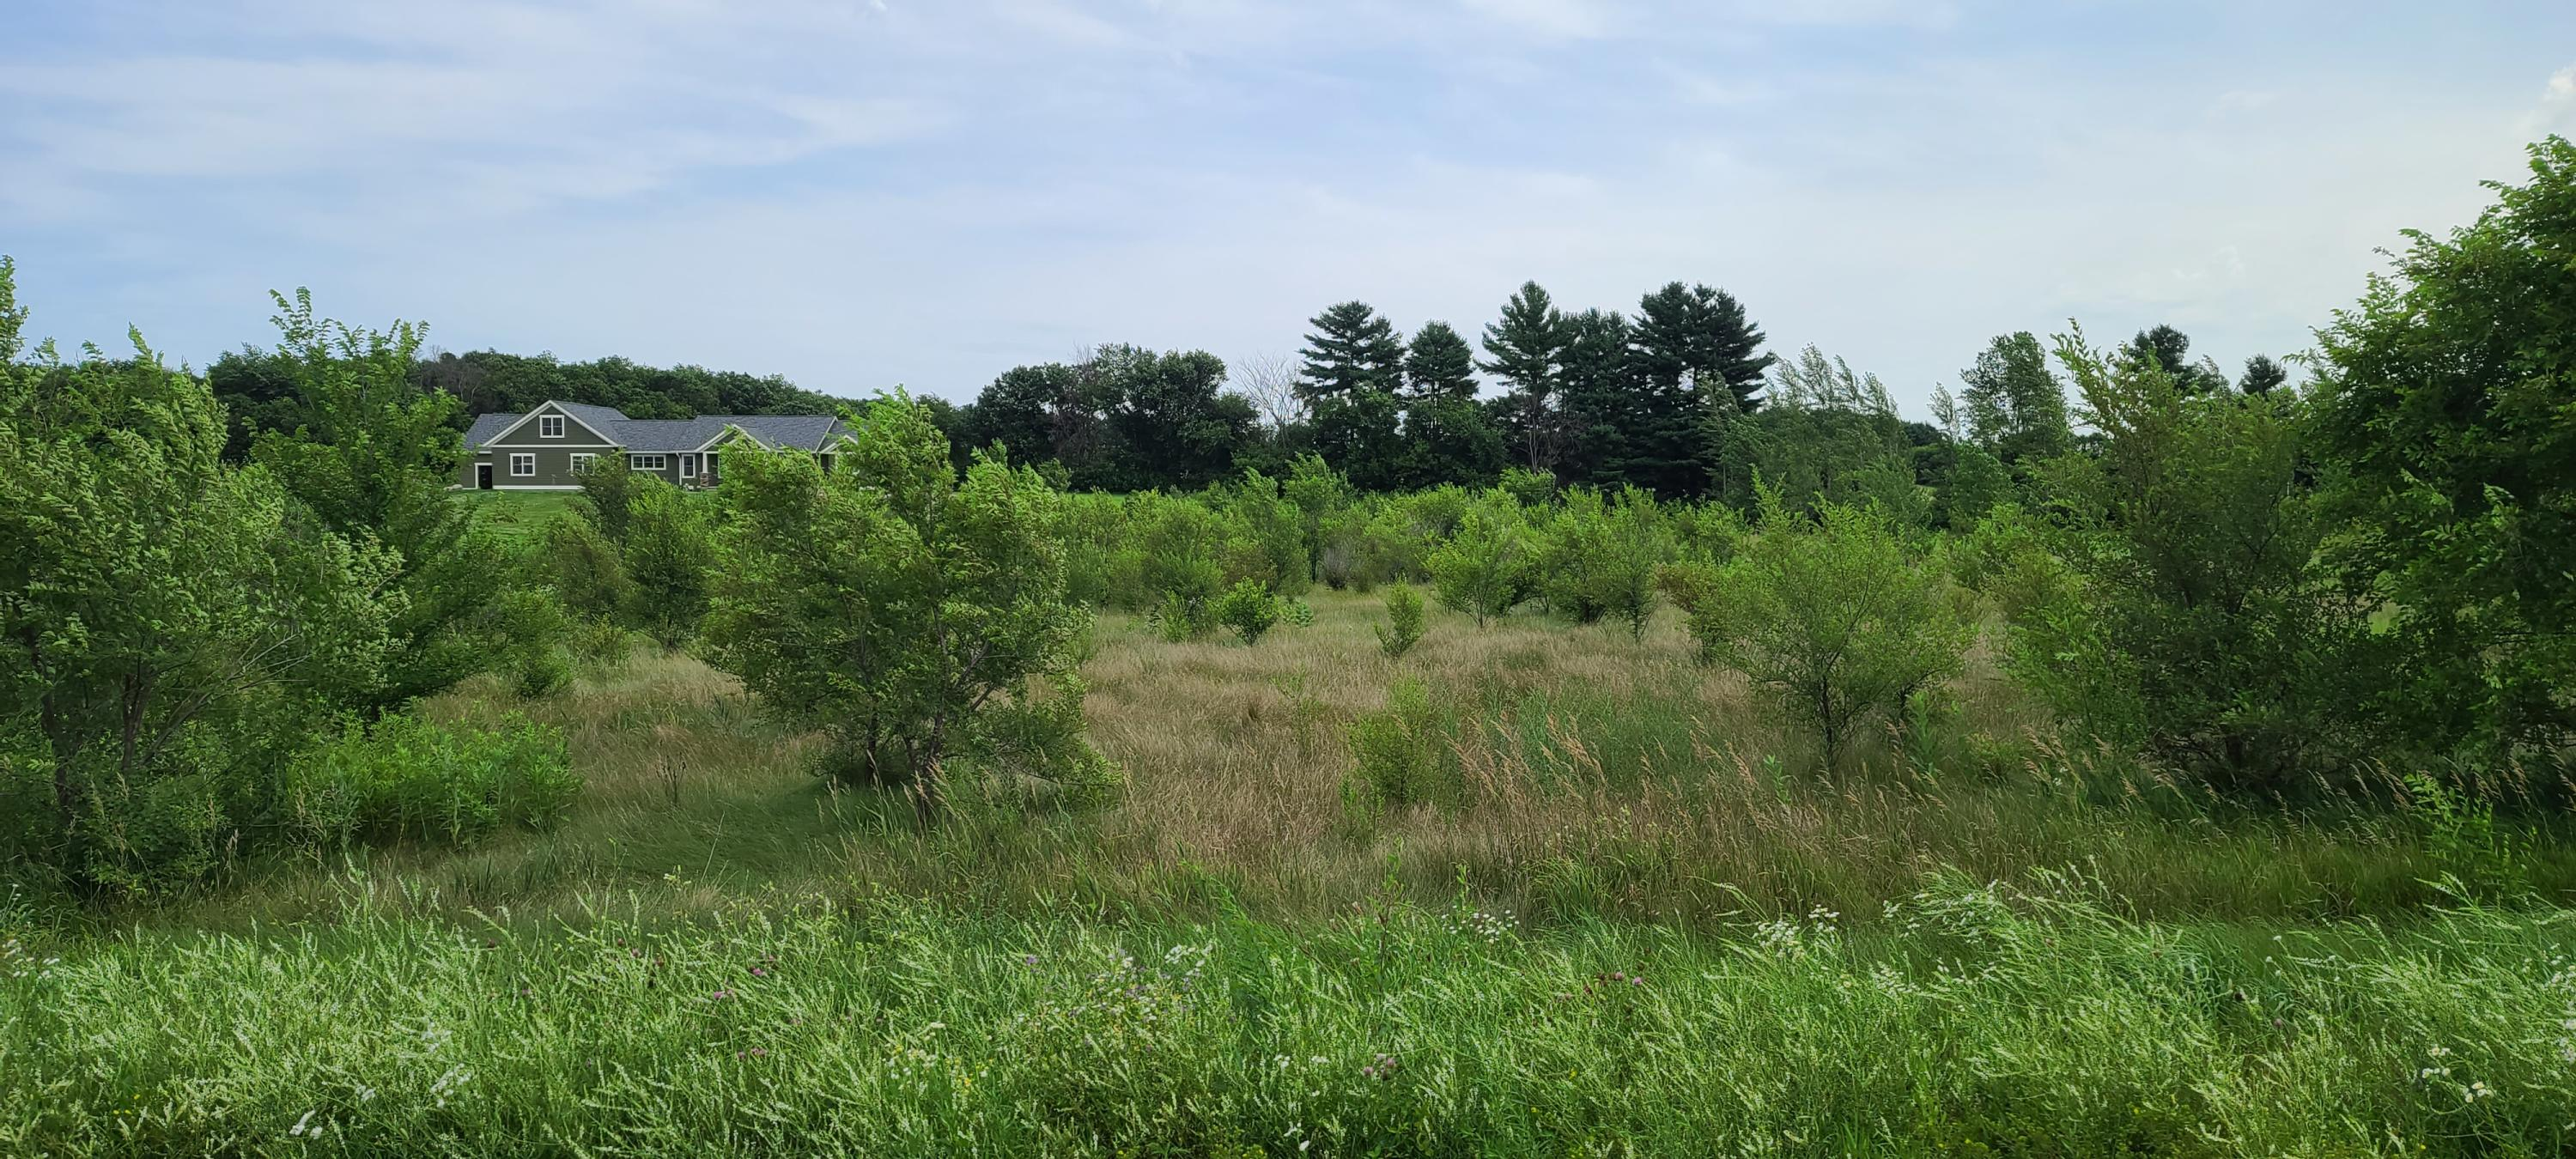 Lot 67 Wildrose Rd, Trempealeau, Wisconsin 54661, ,Vacant Land,For Sale,Wildrose Rd,1710232